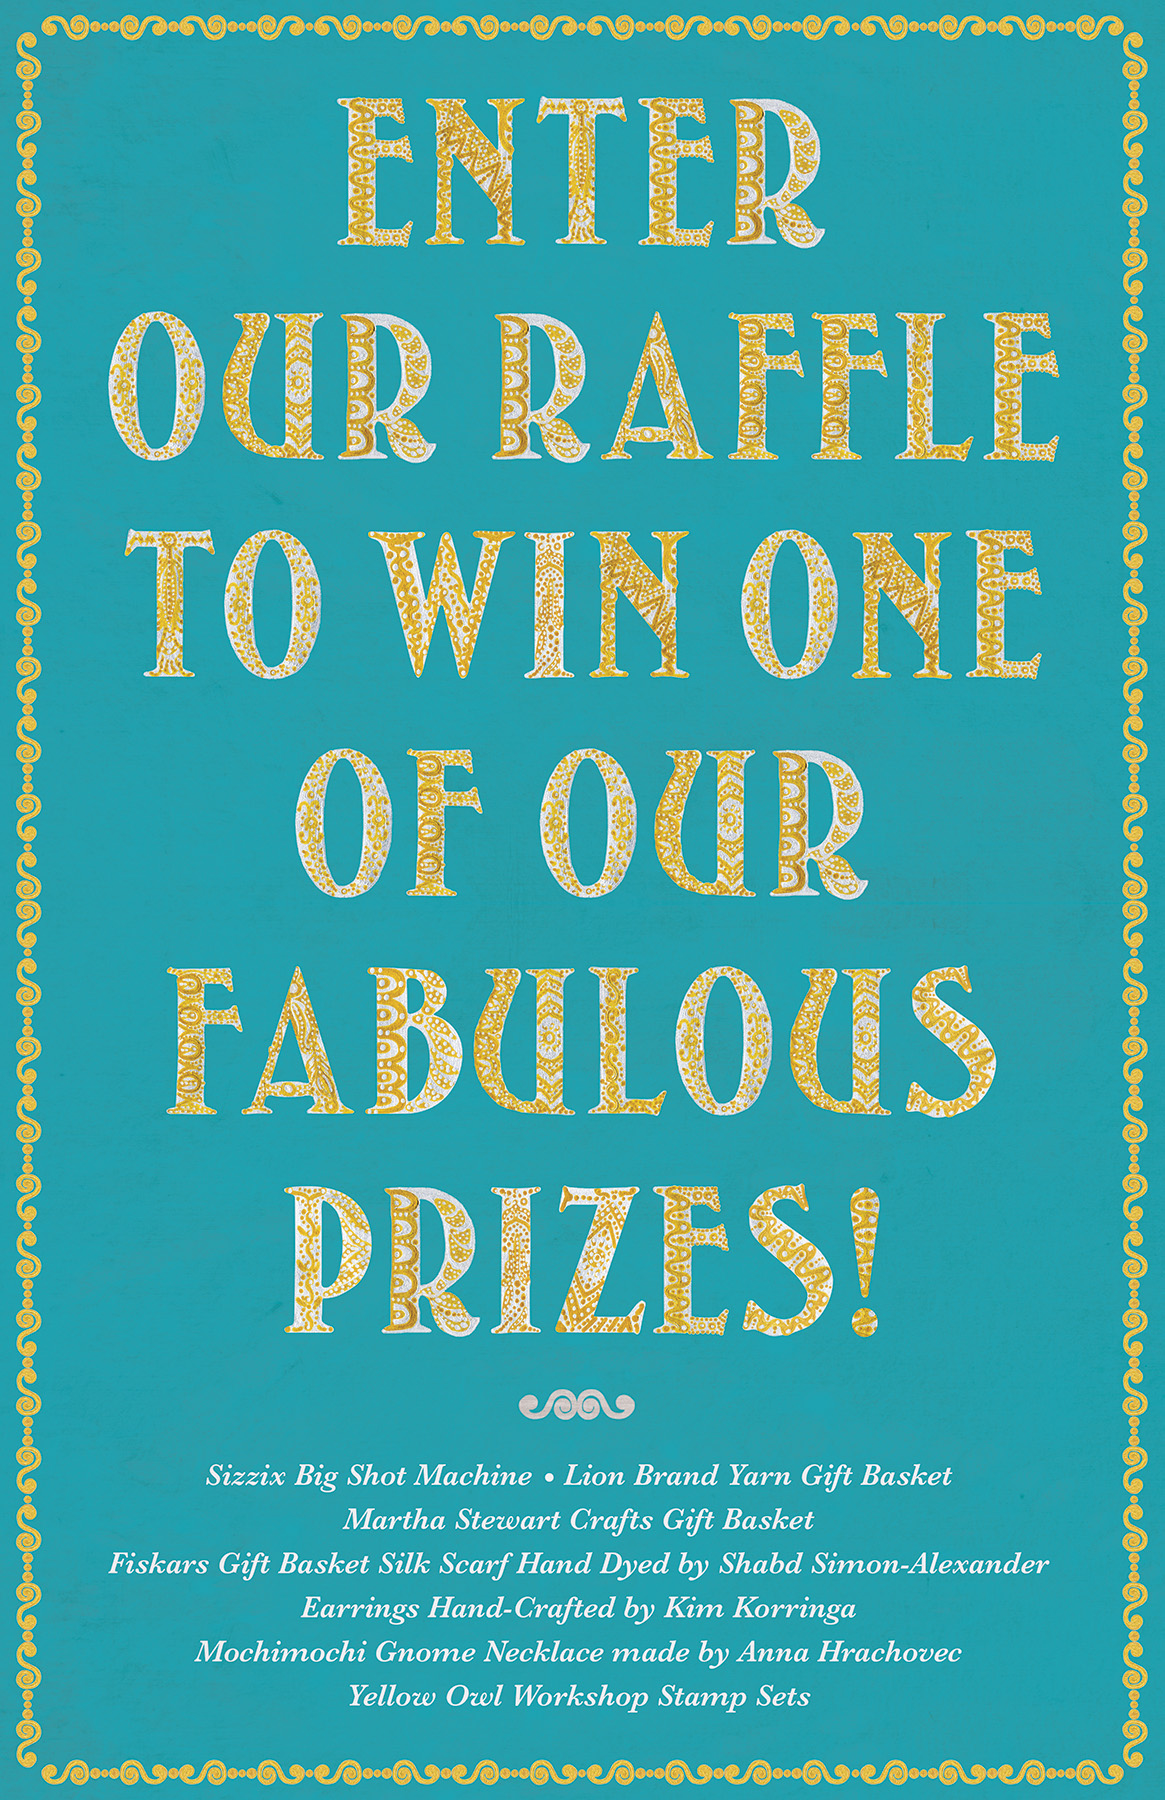 Crafternoon raffle sign for Random House